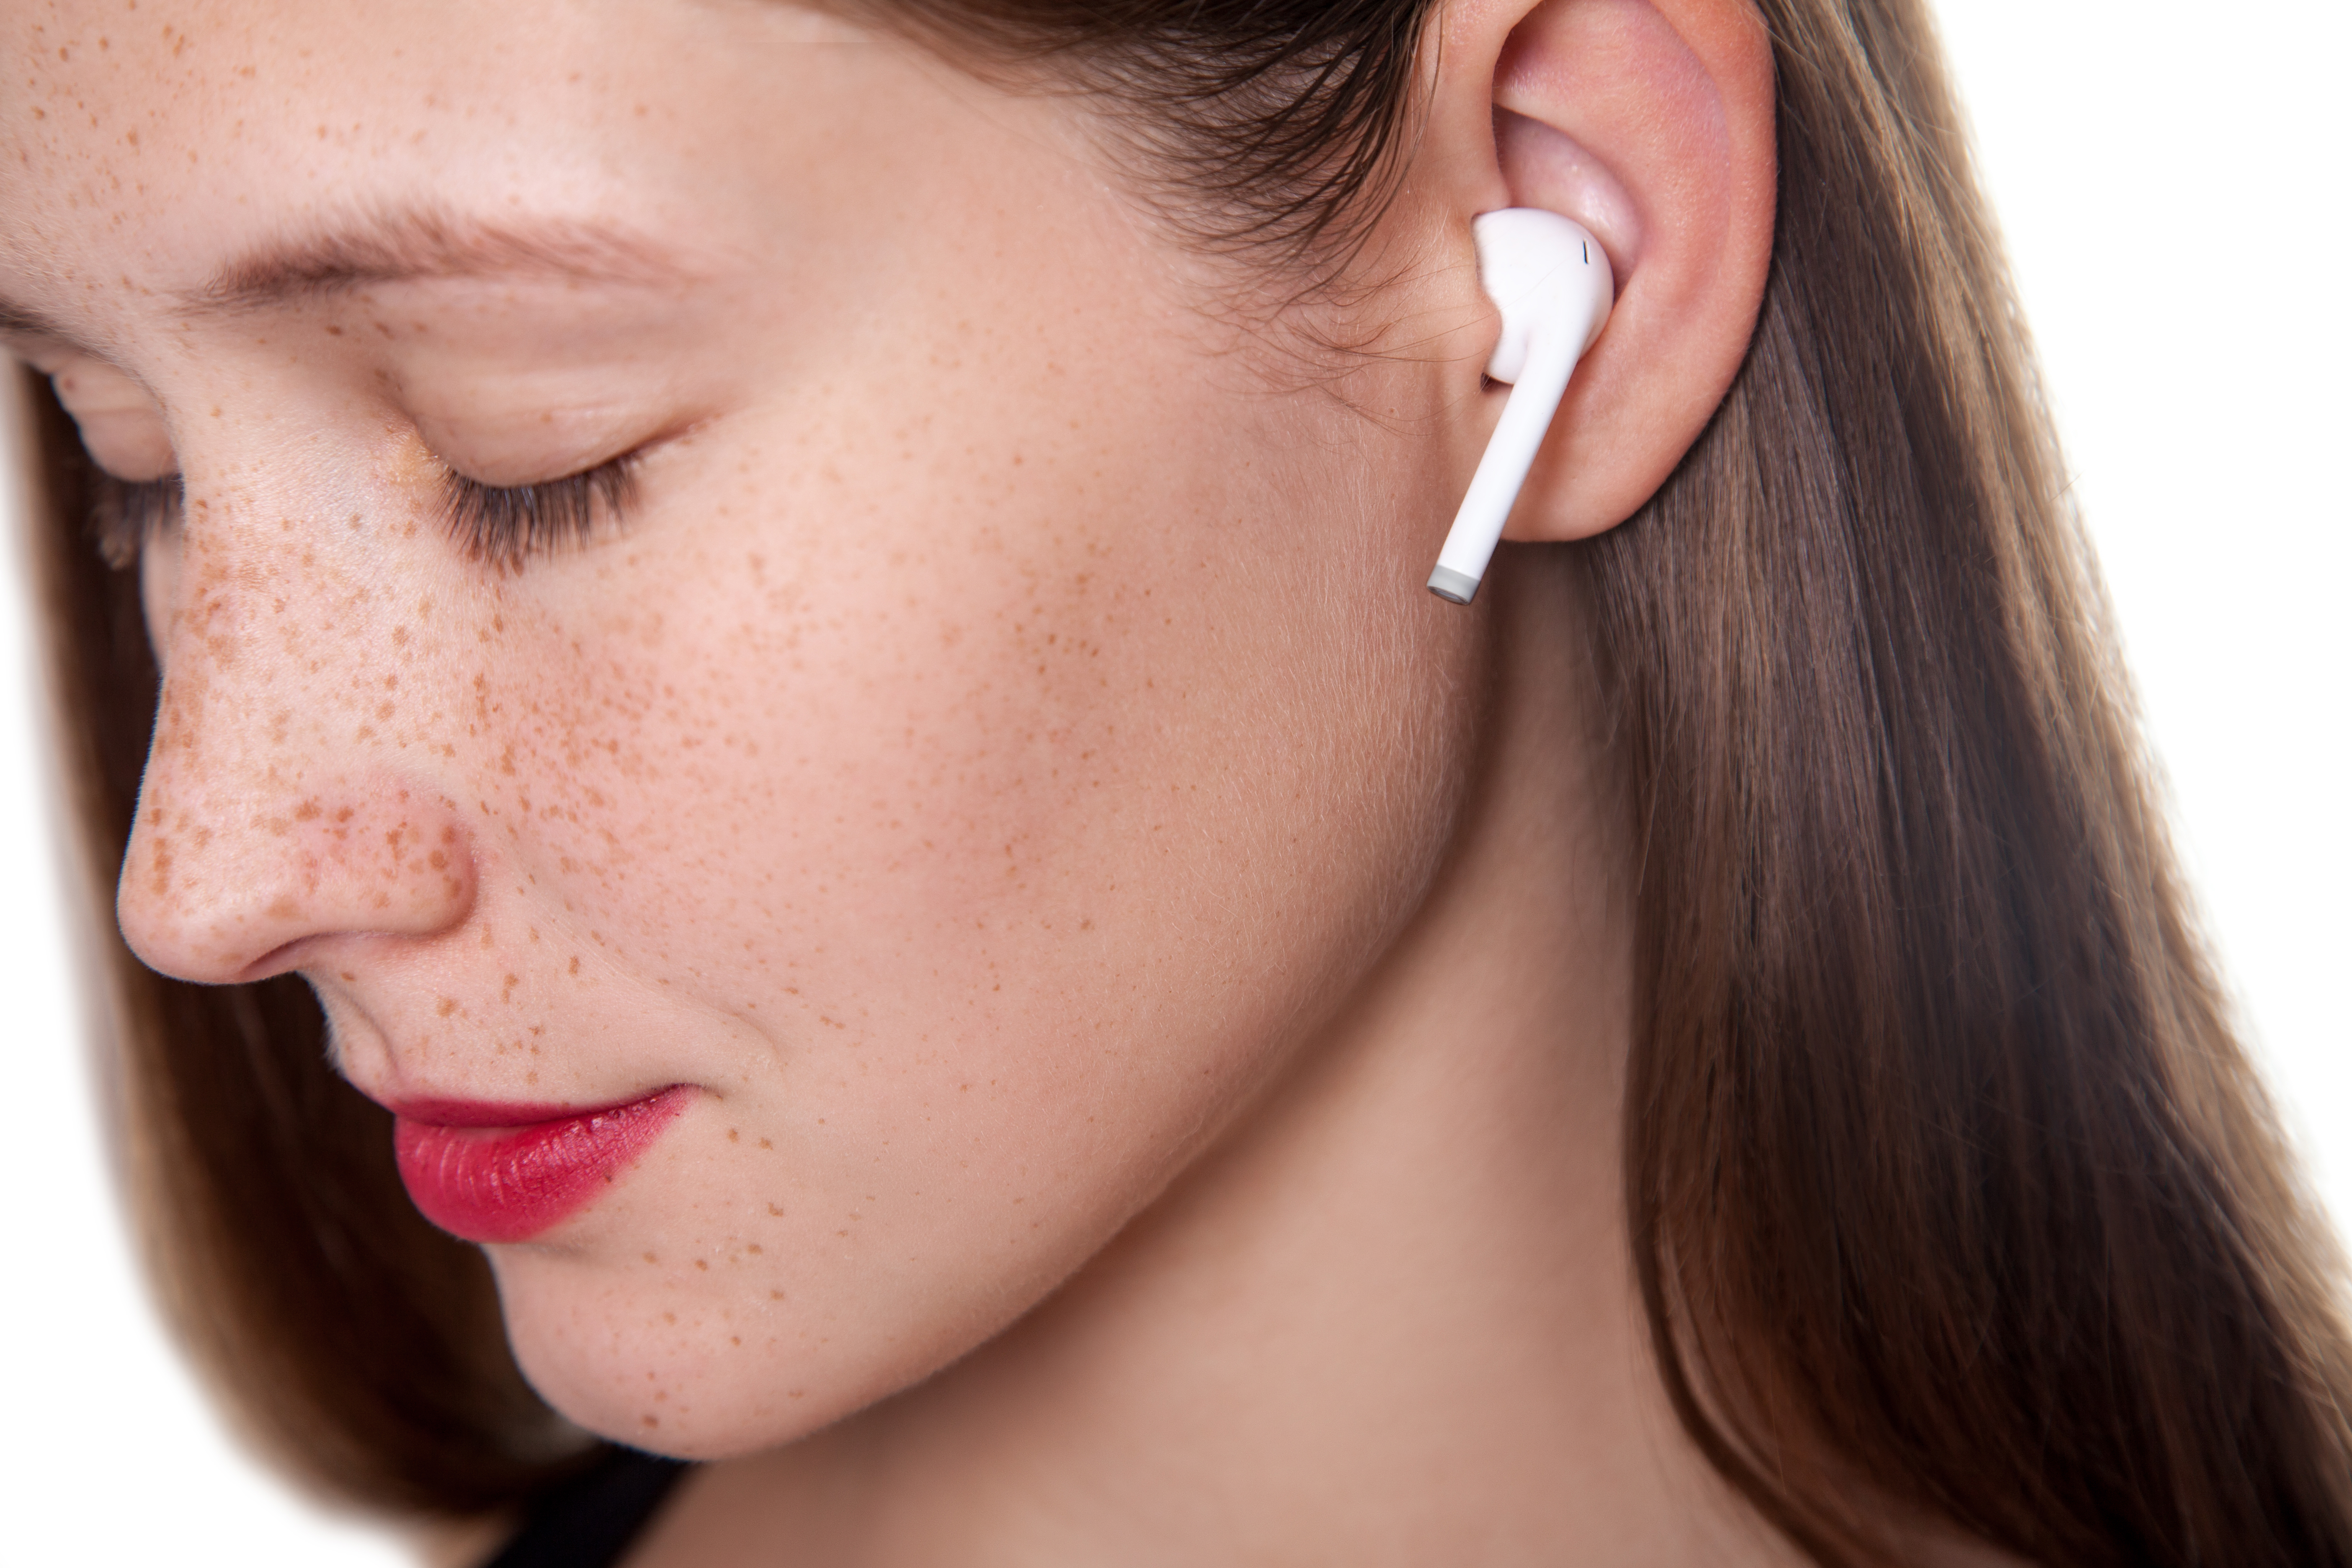 Tech identifies users by the inside of their ears